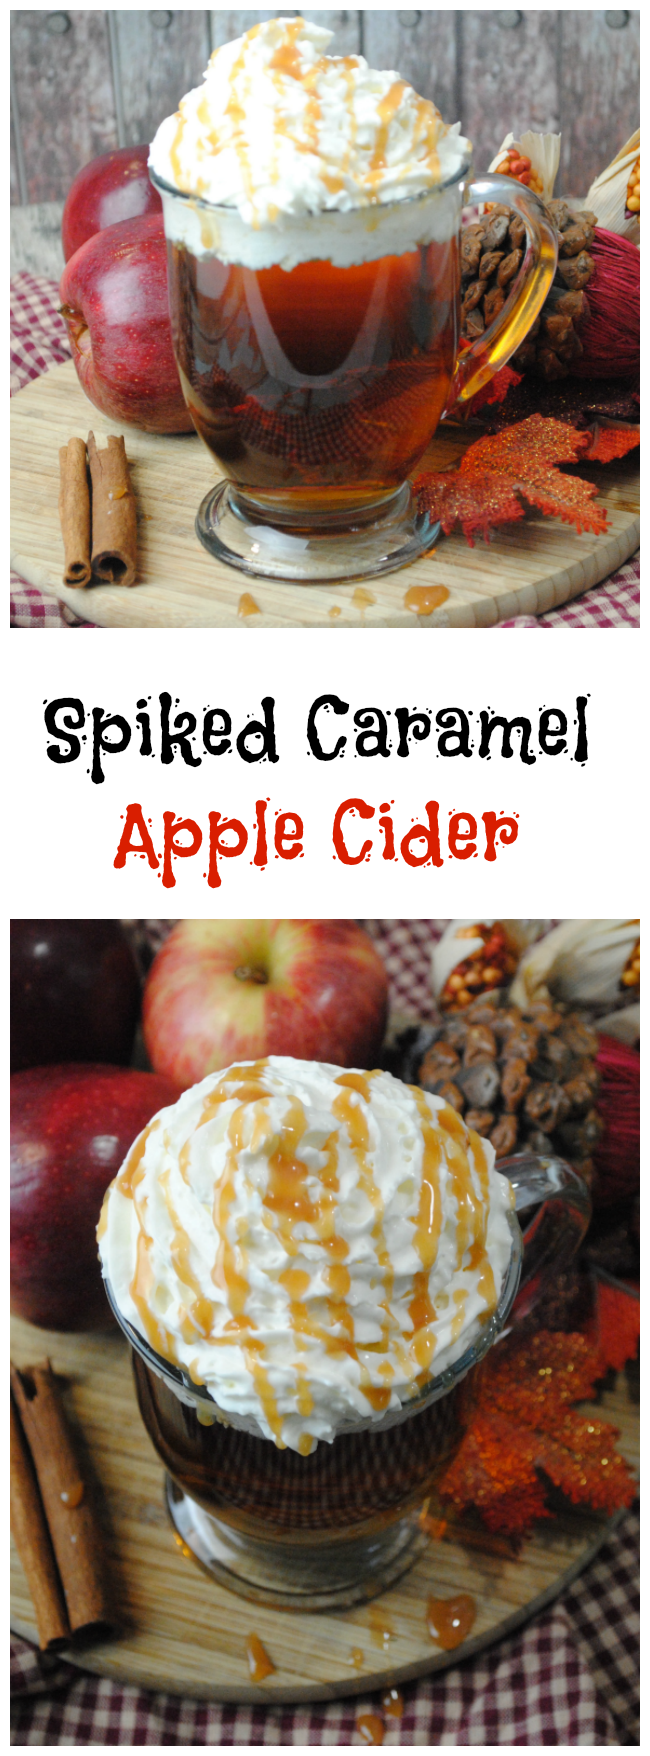 We have already shared some Apple Cider Donuts, Crock Pot Apple Pork Chops and today we have a Spiked Caramel Apple Cider Recipe.